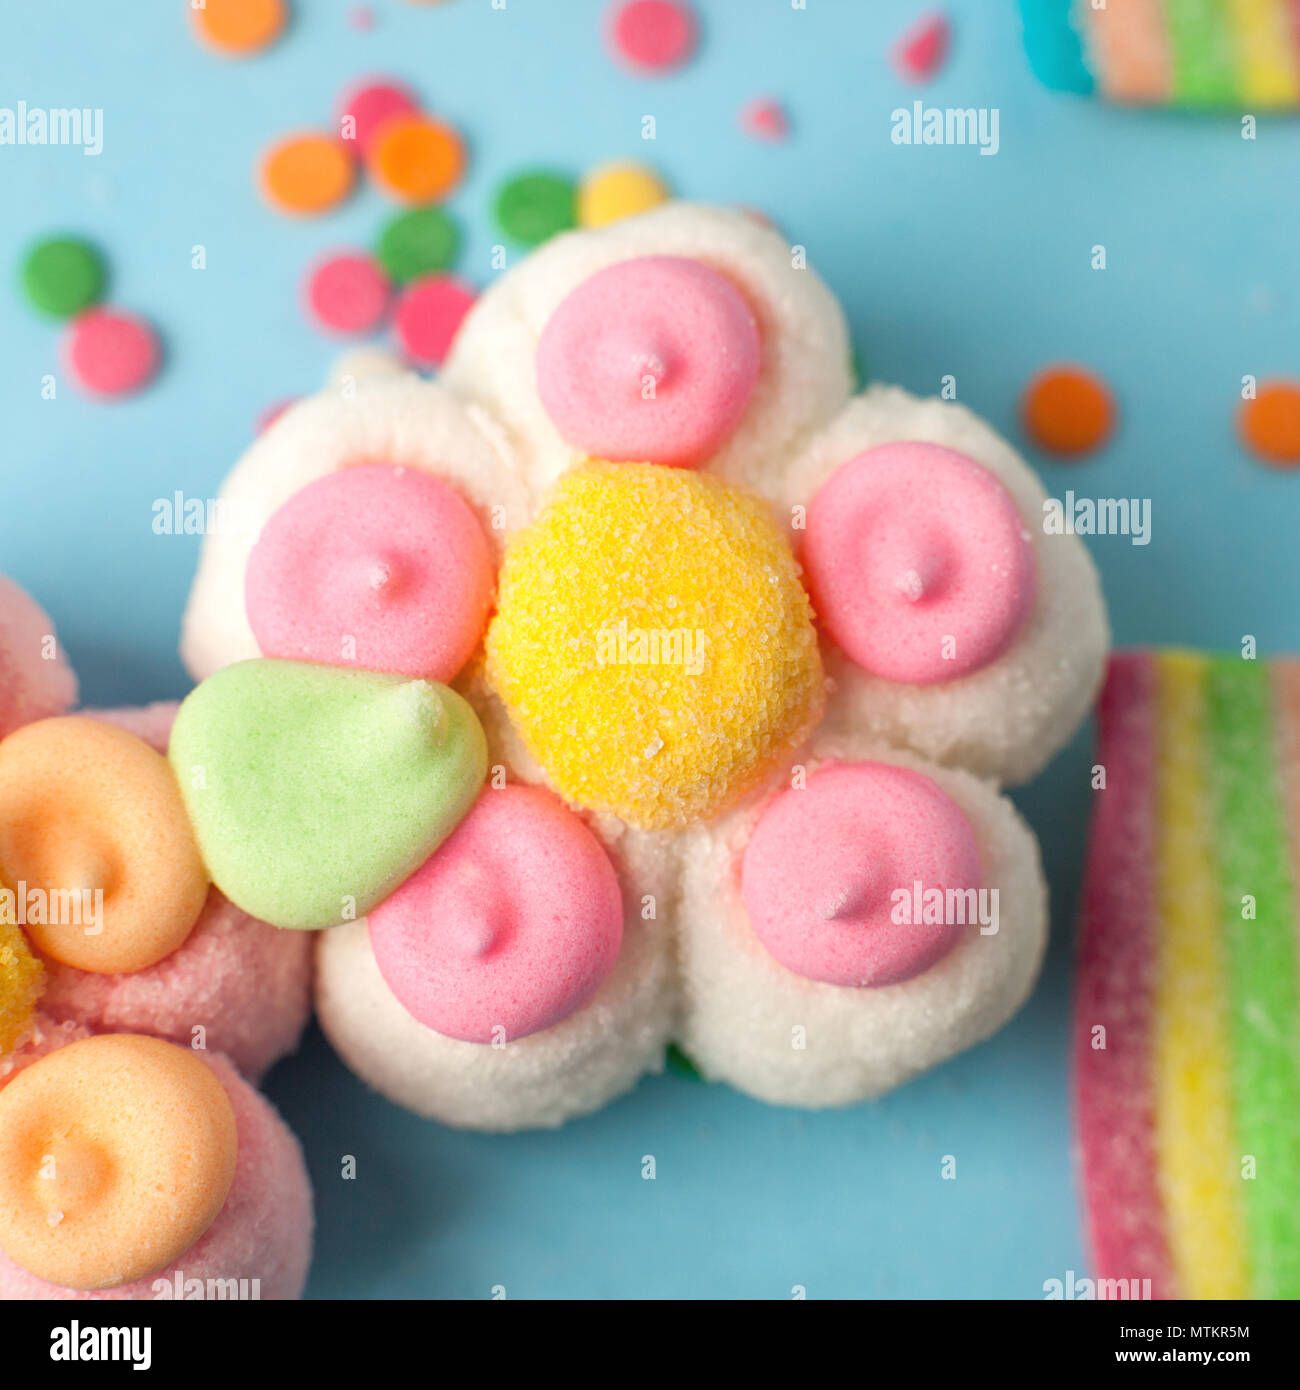 candies with jelly and sugar pattern. colorful array of different childs sweets and treats. Bright party background, kids sweetness flowers marmalade - Stock Image